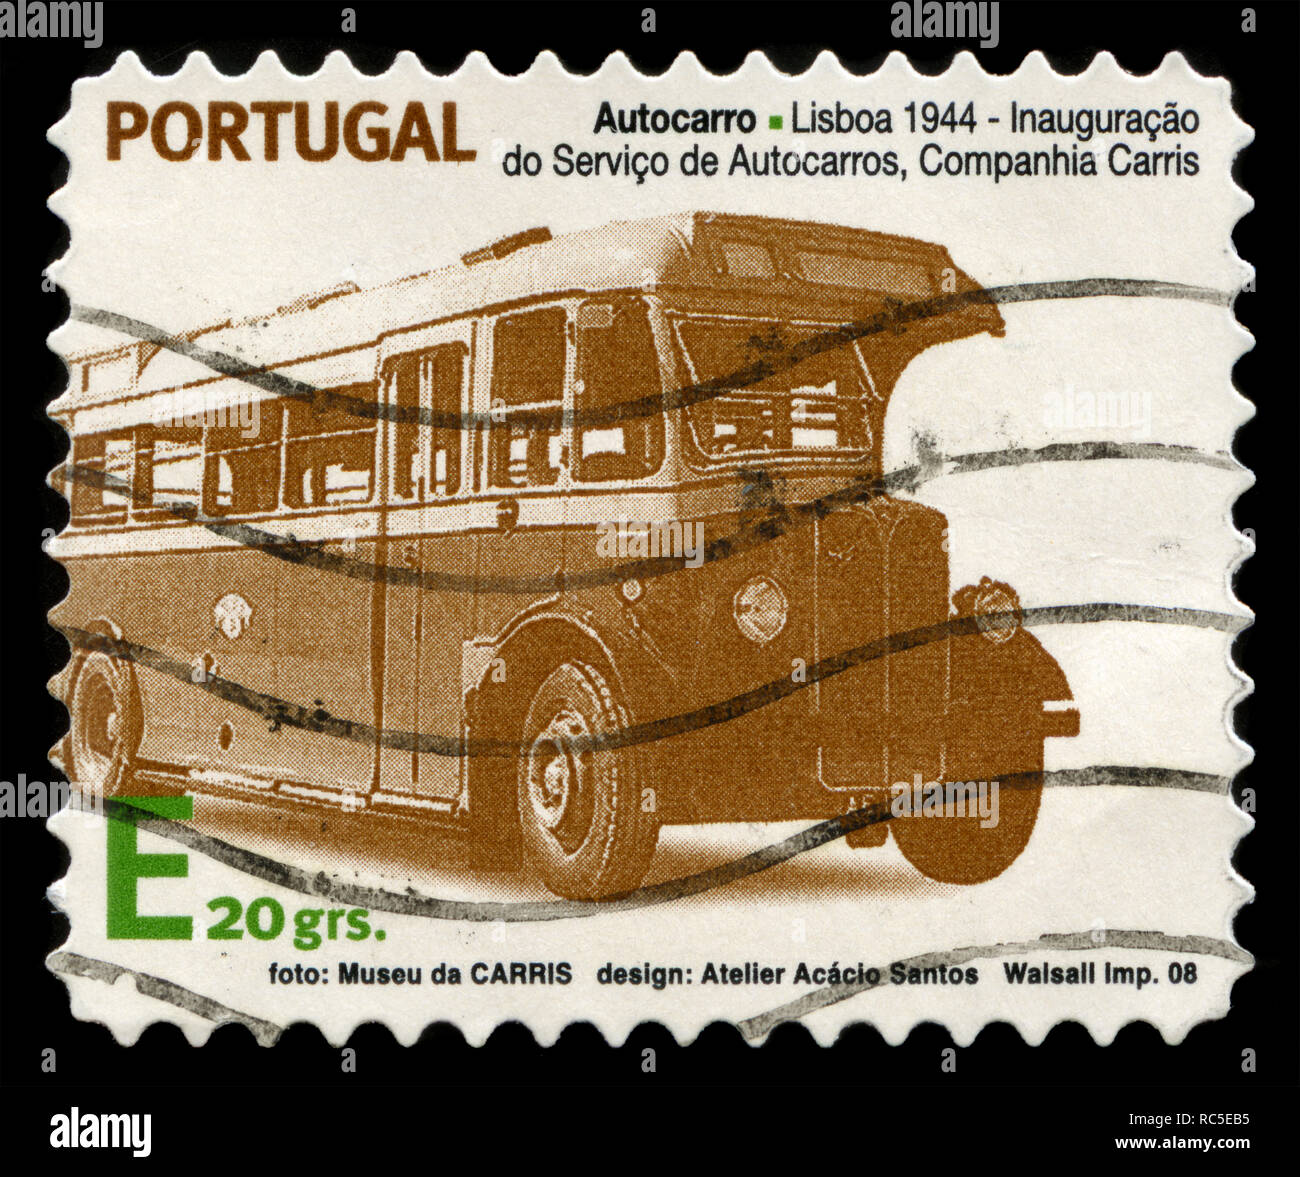 Postage stamp from Portugal in the Historical Urban Public Transport series issued in 2008 - Stock Image